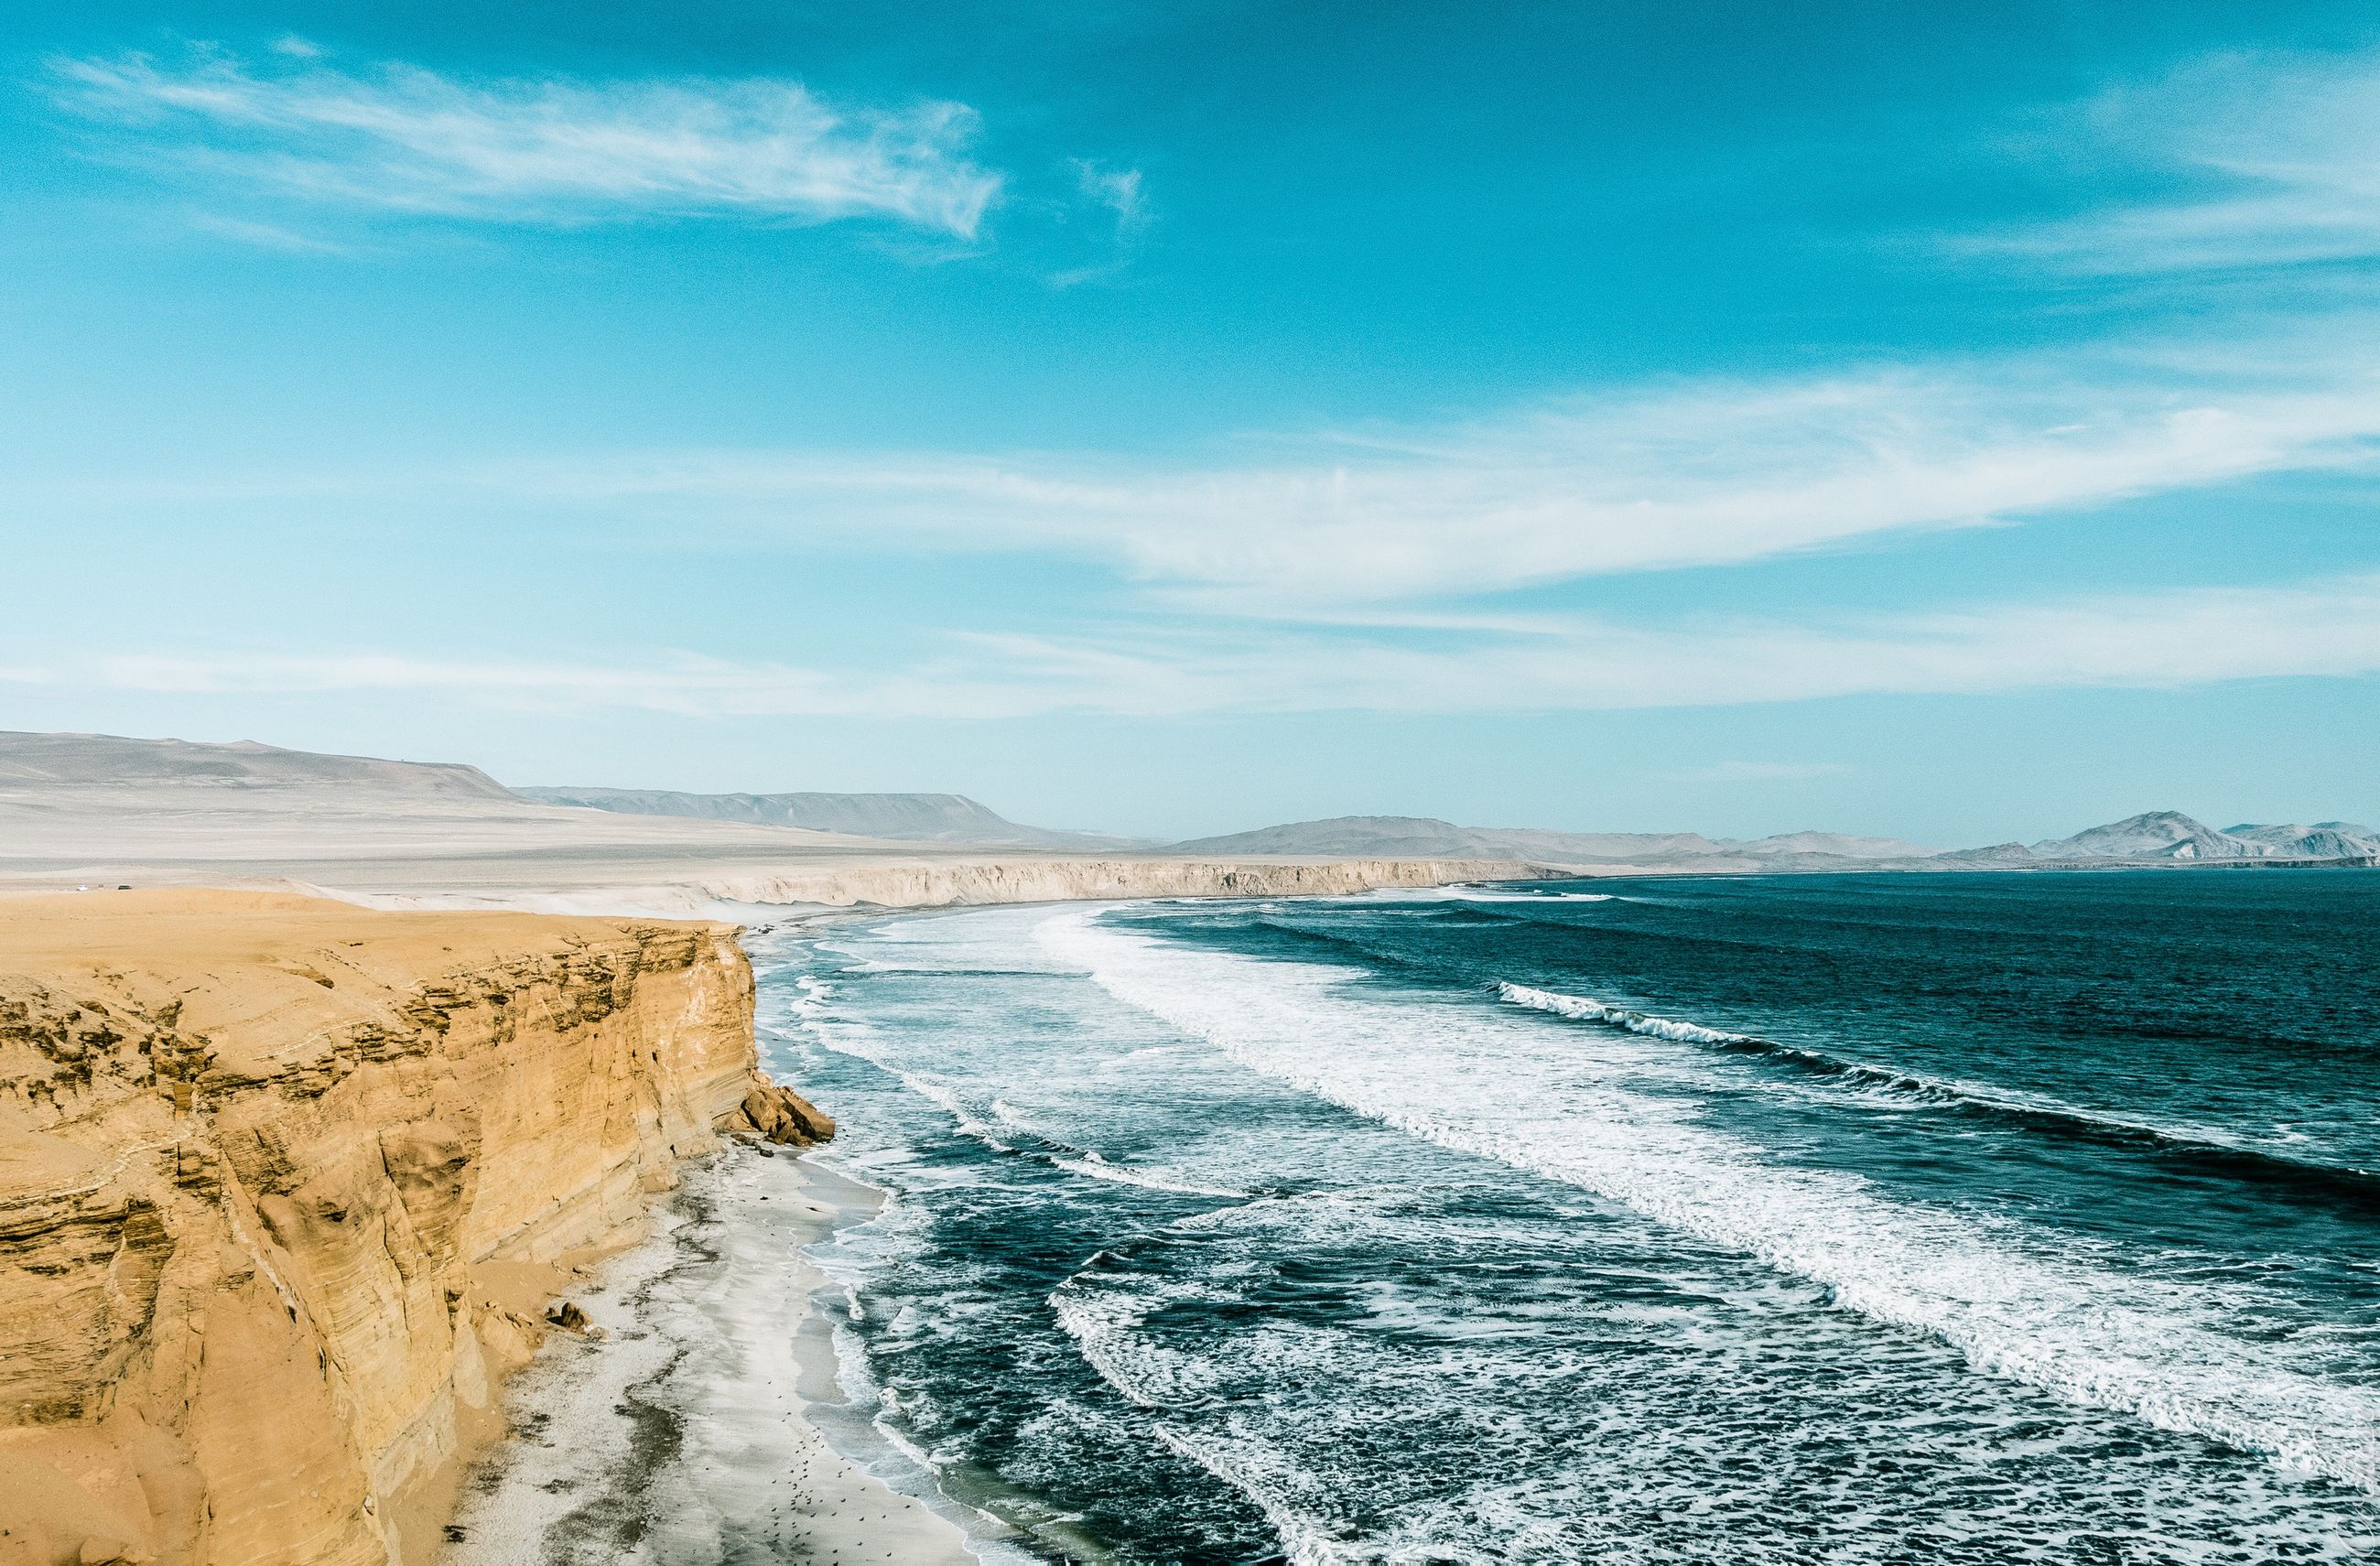 scenics - nature, water, sea, sky, beauty in nature, land, cloud - sky, beach, tranquil scene, tranquility, motion, day, nature, aquatic sport, wave, non-urban scene, sport, remote, surfing, outdoors